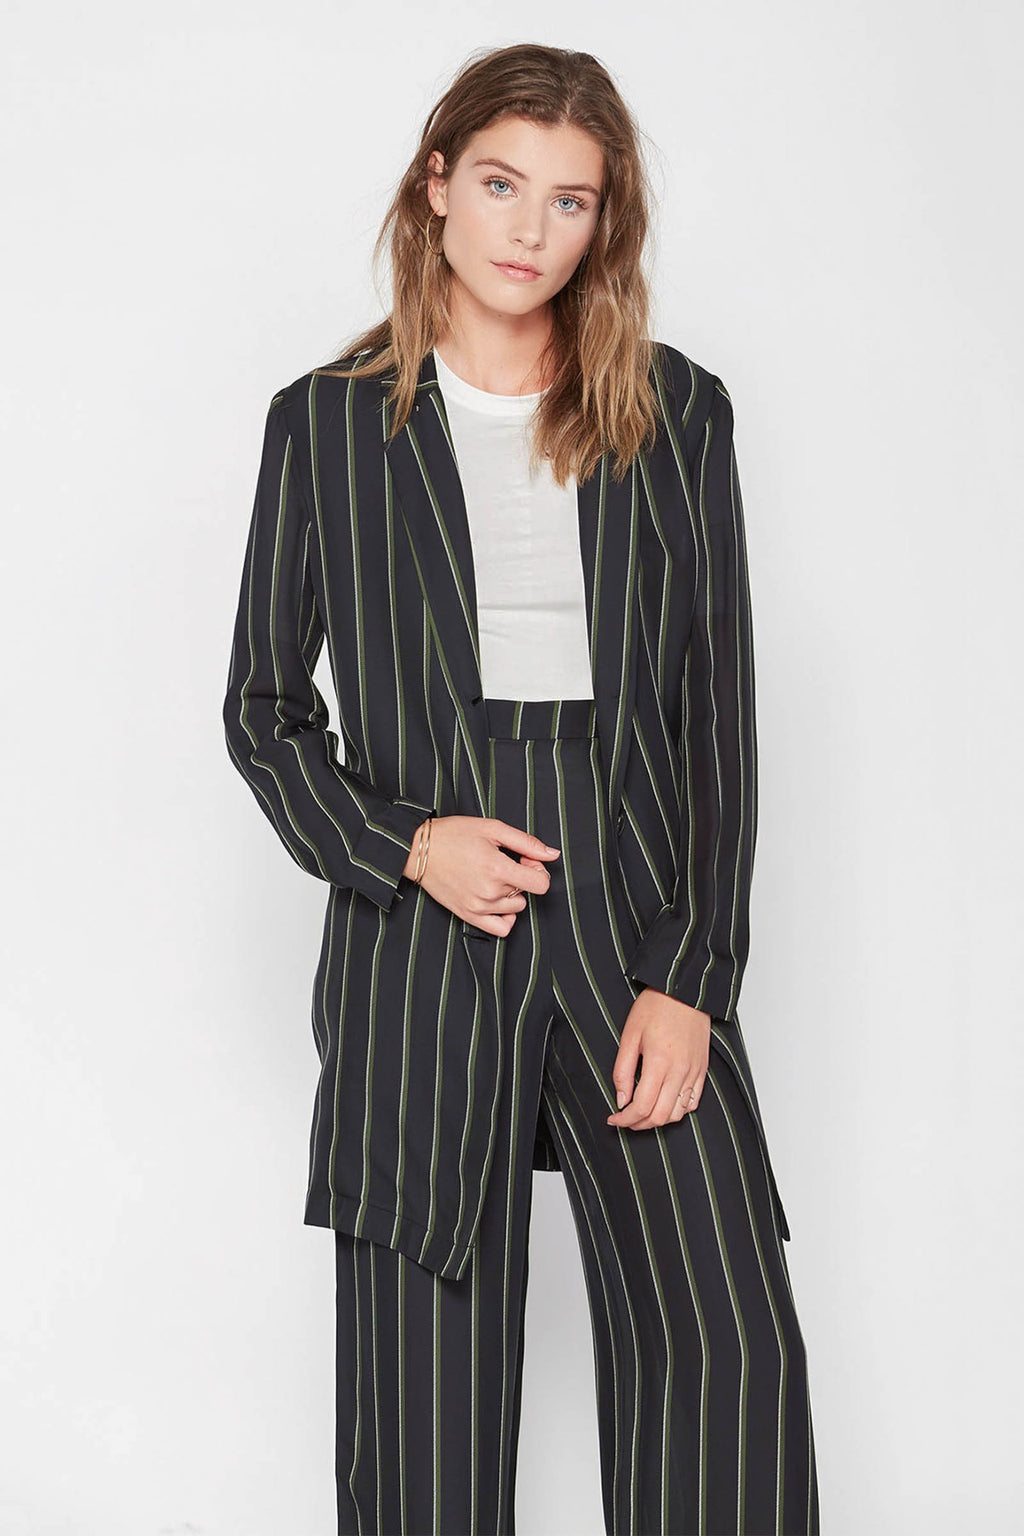 Celine Pinstriped Blazer in Coats & Jackets by J.ING - an L.A based women's fashion line